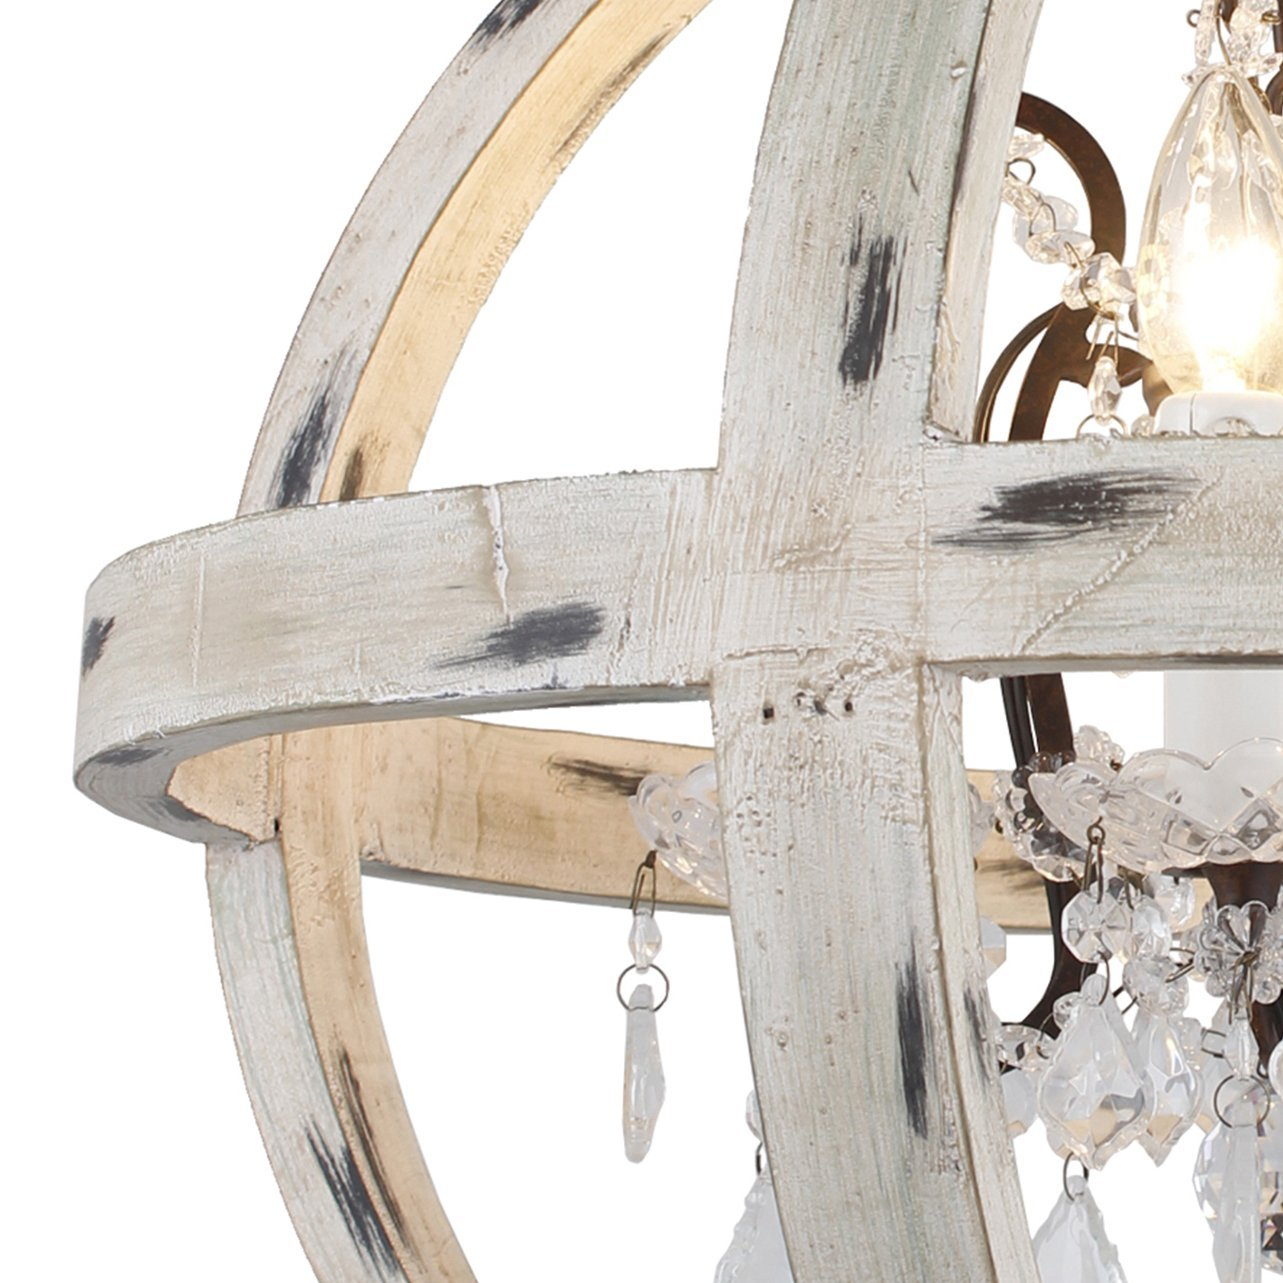 Y-Decor LZ13-4WH 4 Light Candle Style Globe Clear Glass Crystals in Withered White Wood Finish Chandelier WoodFinish